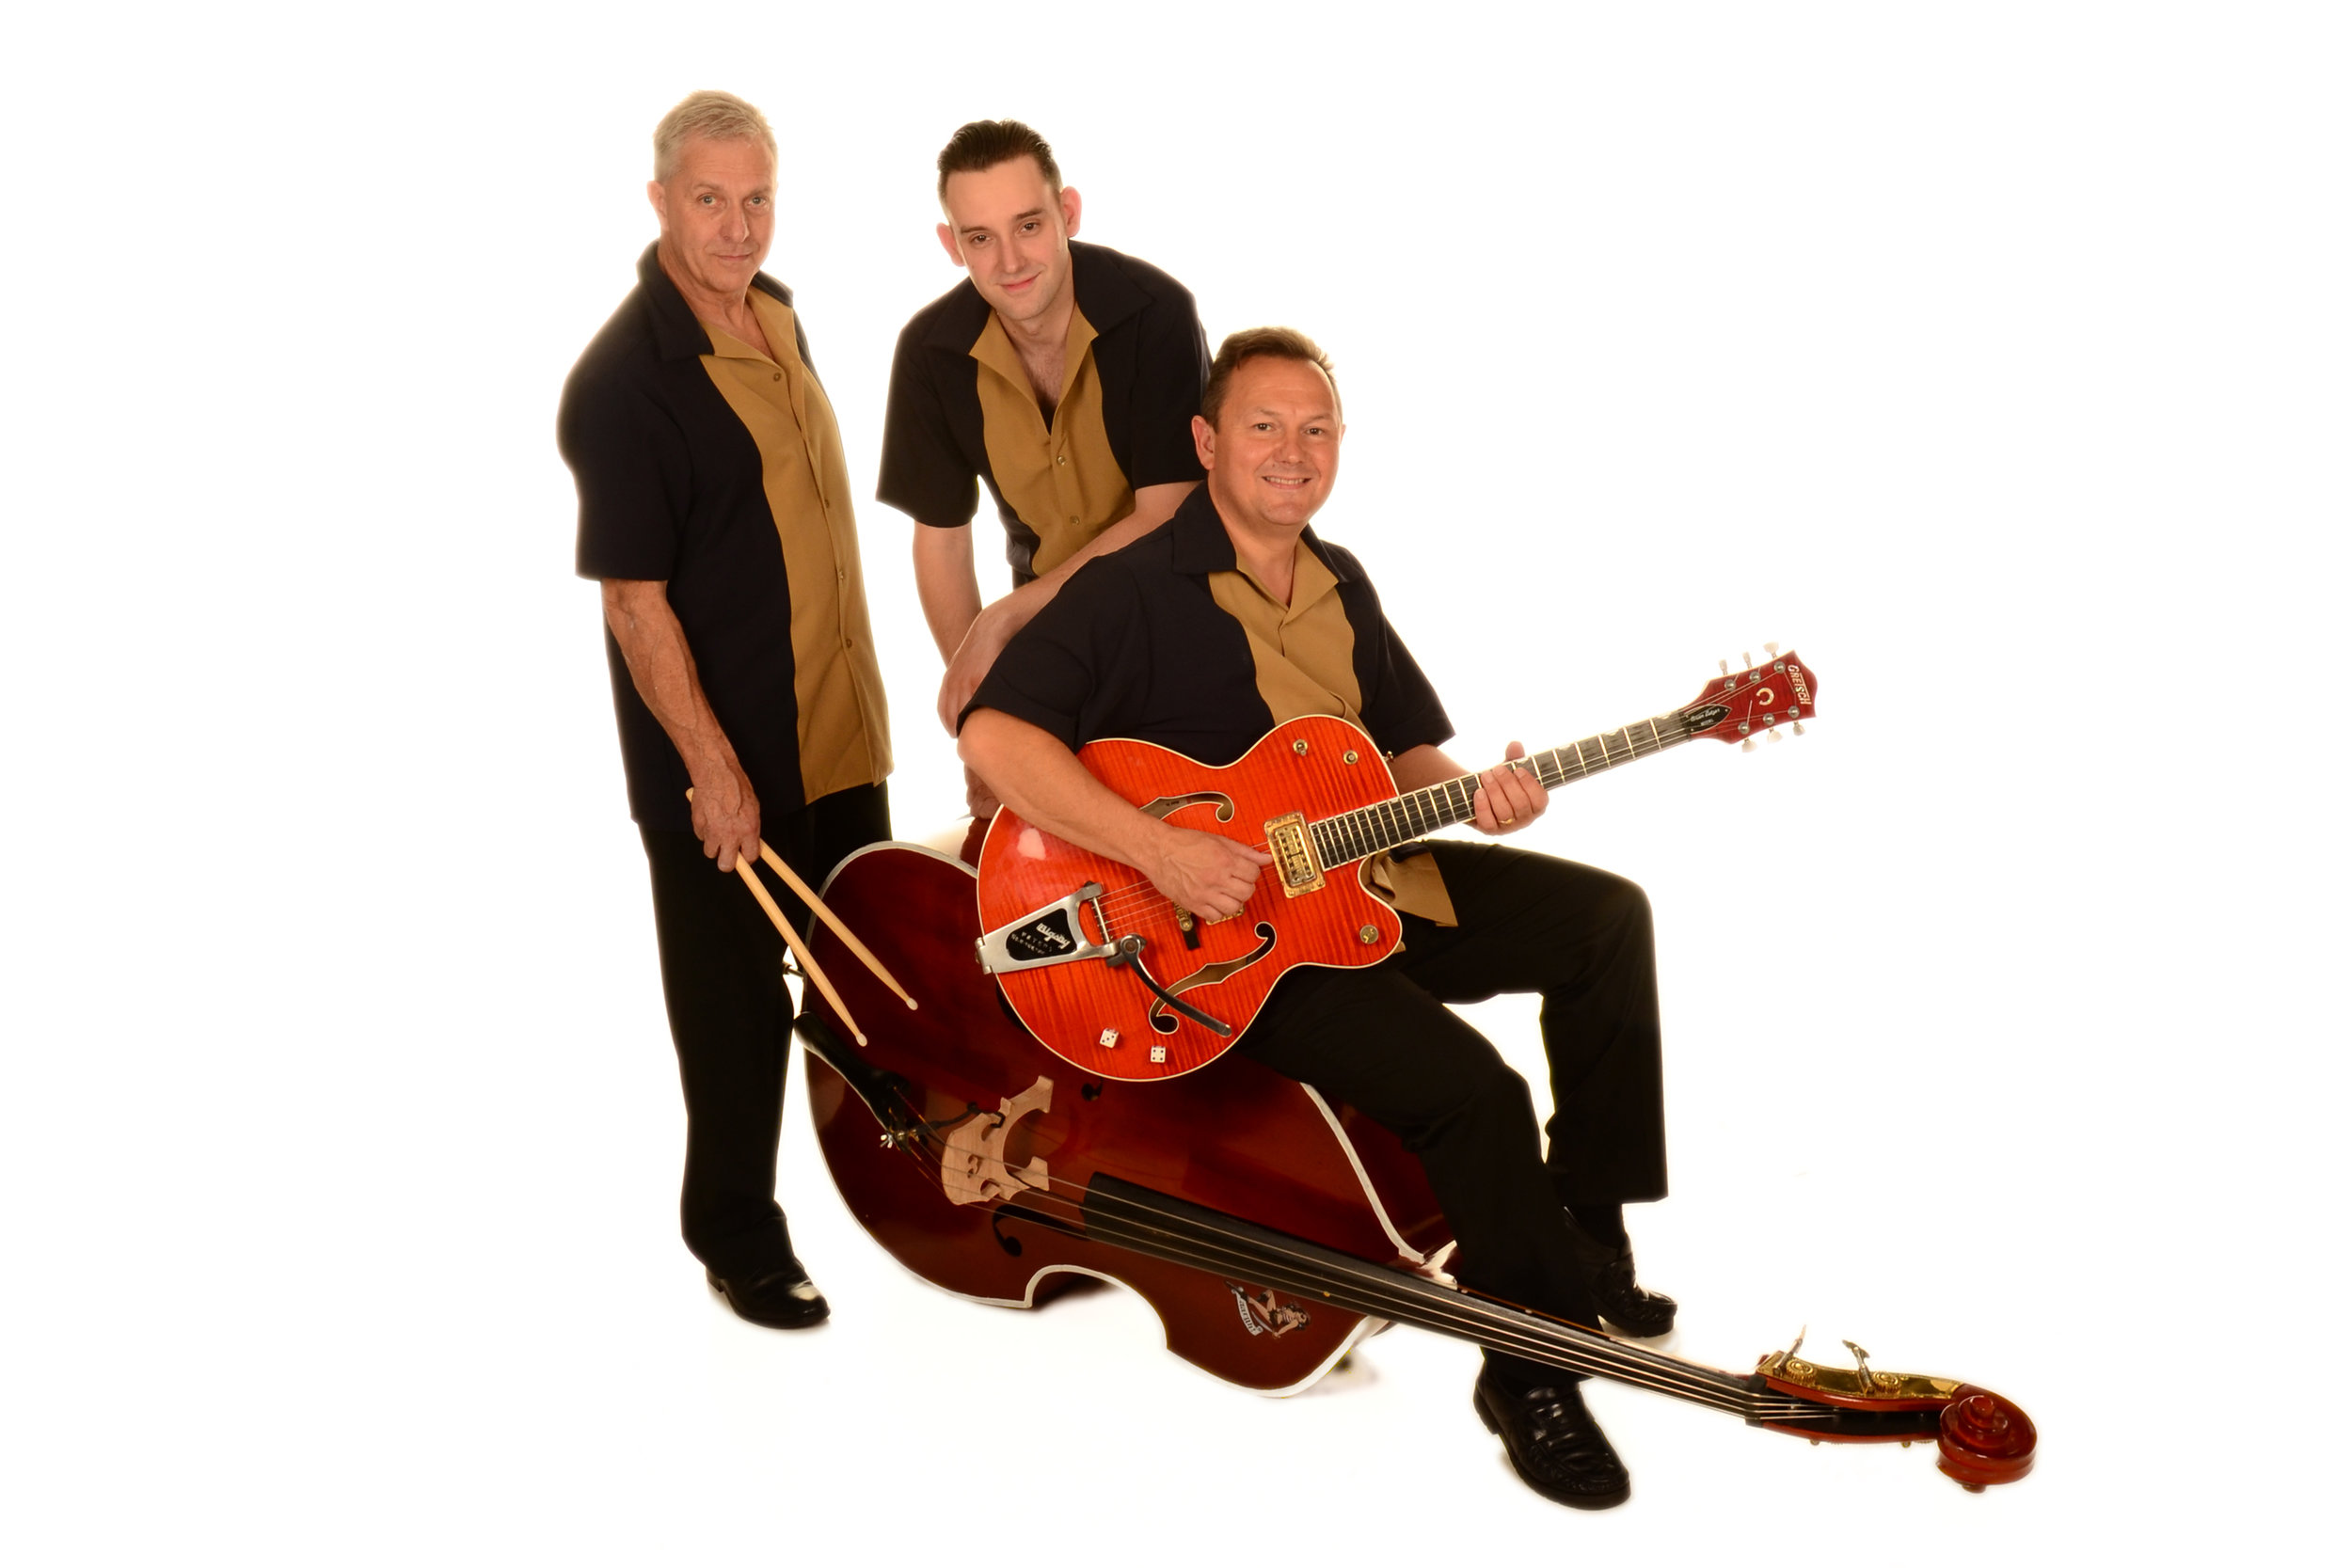 Rockin' The Joint - https://www.rockinthejoint.co.uk//Formed in 2001 in darkest Dorset, three-piece Rockin'the Joint are one of the UK's leading Rock'n'Roll groups.In celebration of the classic music of the Rock'n'Roll years Rockin'the Joint feature songs from key artists such as Elvis Presley, Carl Perkins, Johnny Burnette, Chuck Berry and Eddie Cochran whilst also acknowledging those currently keeping the Rock'n'Roll flame alive including Brian Setzer, The Go-Getters and Darrel Higham.The groups' diverse live shows feature Rockabilly, Doo Wop, Ballads, Boppers and Swing classics that fall within the Rock'n'Roll genre.